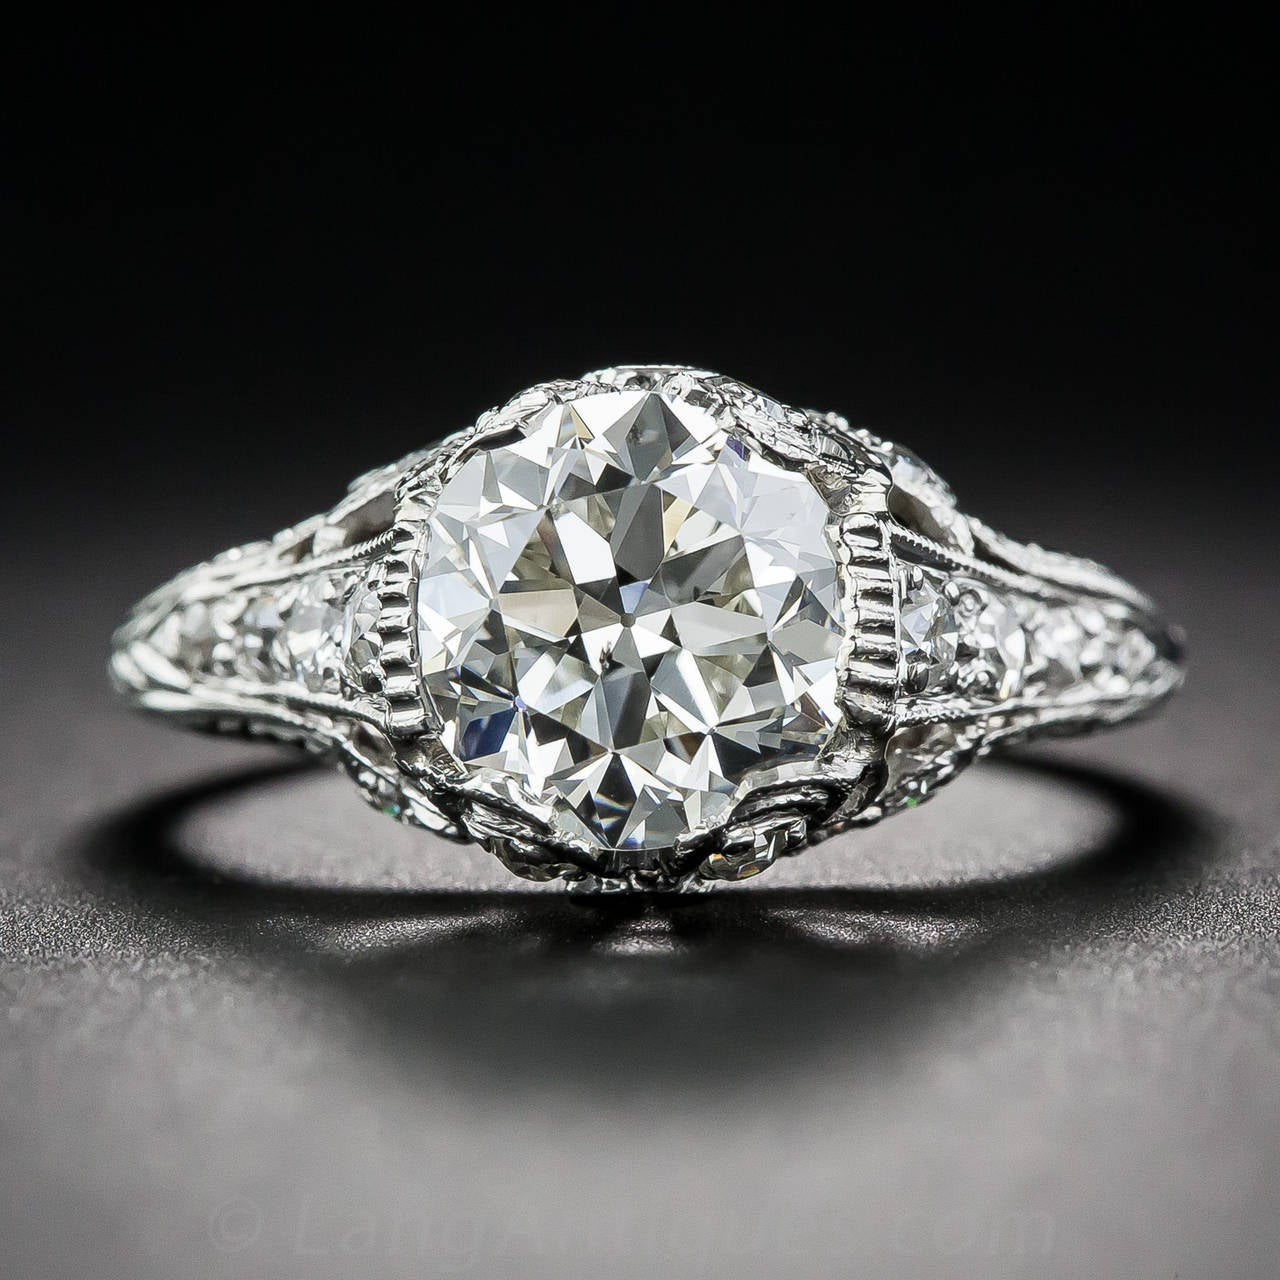 An absolutely gorgeous European-cut diamond, weighing 2.09 carats, beams brilliantly from within an original platinum and diamond mounting dating from the early-twentieth century. The splendid ring, which you can tell from the all around hand